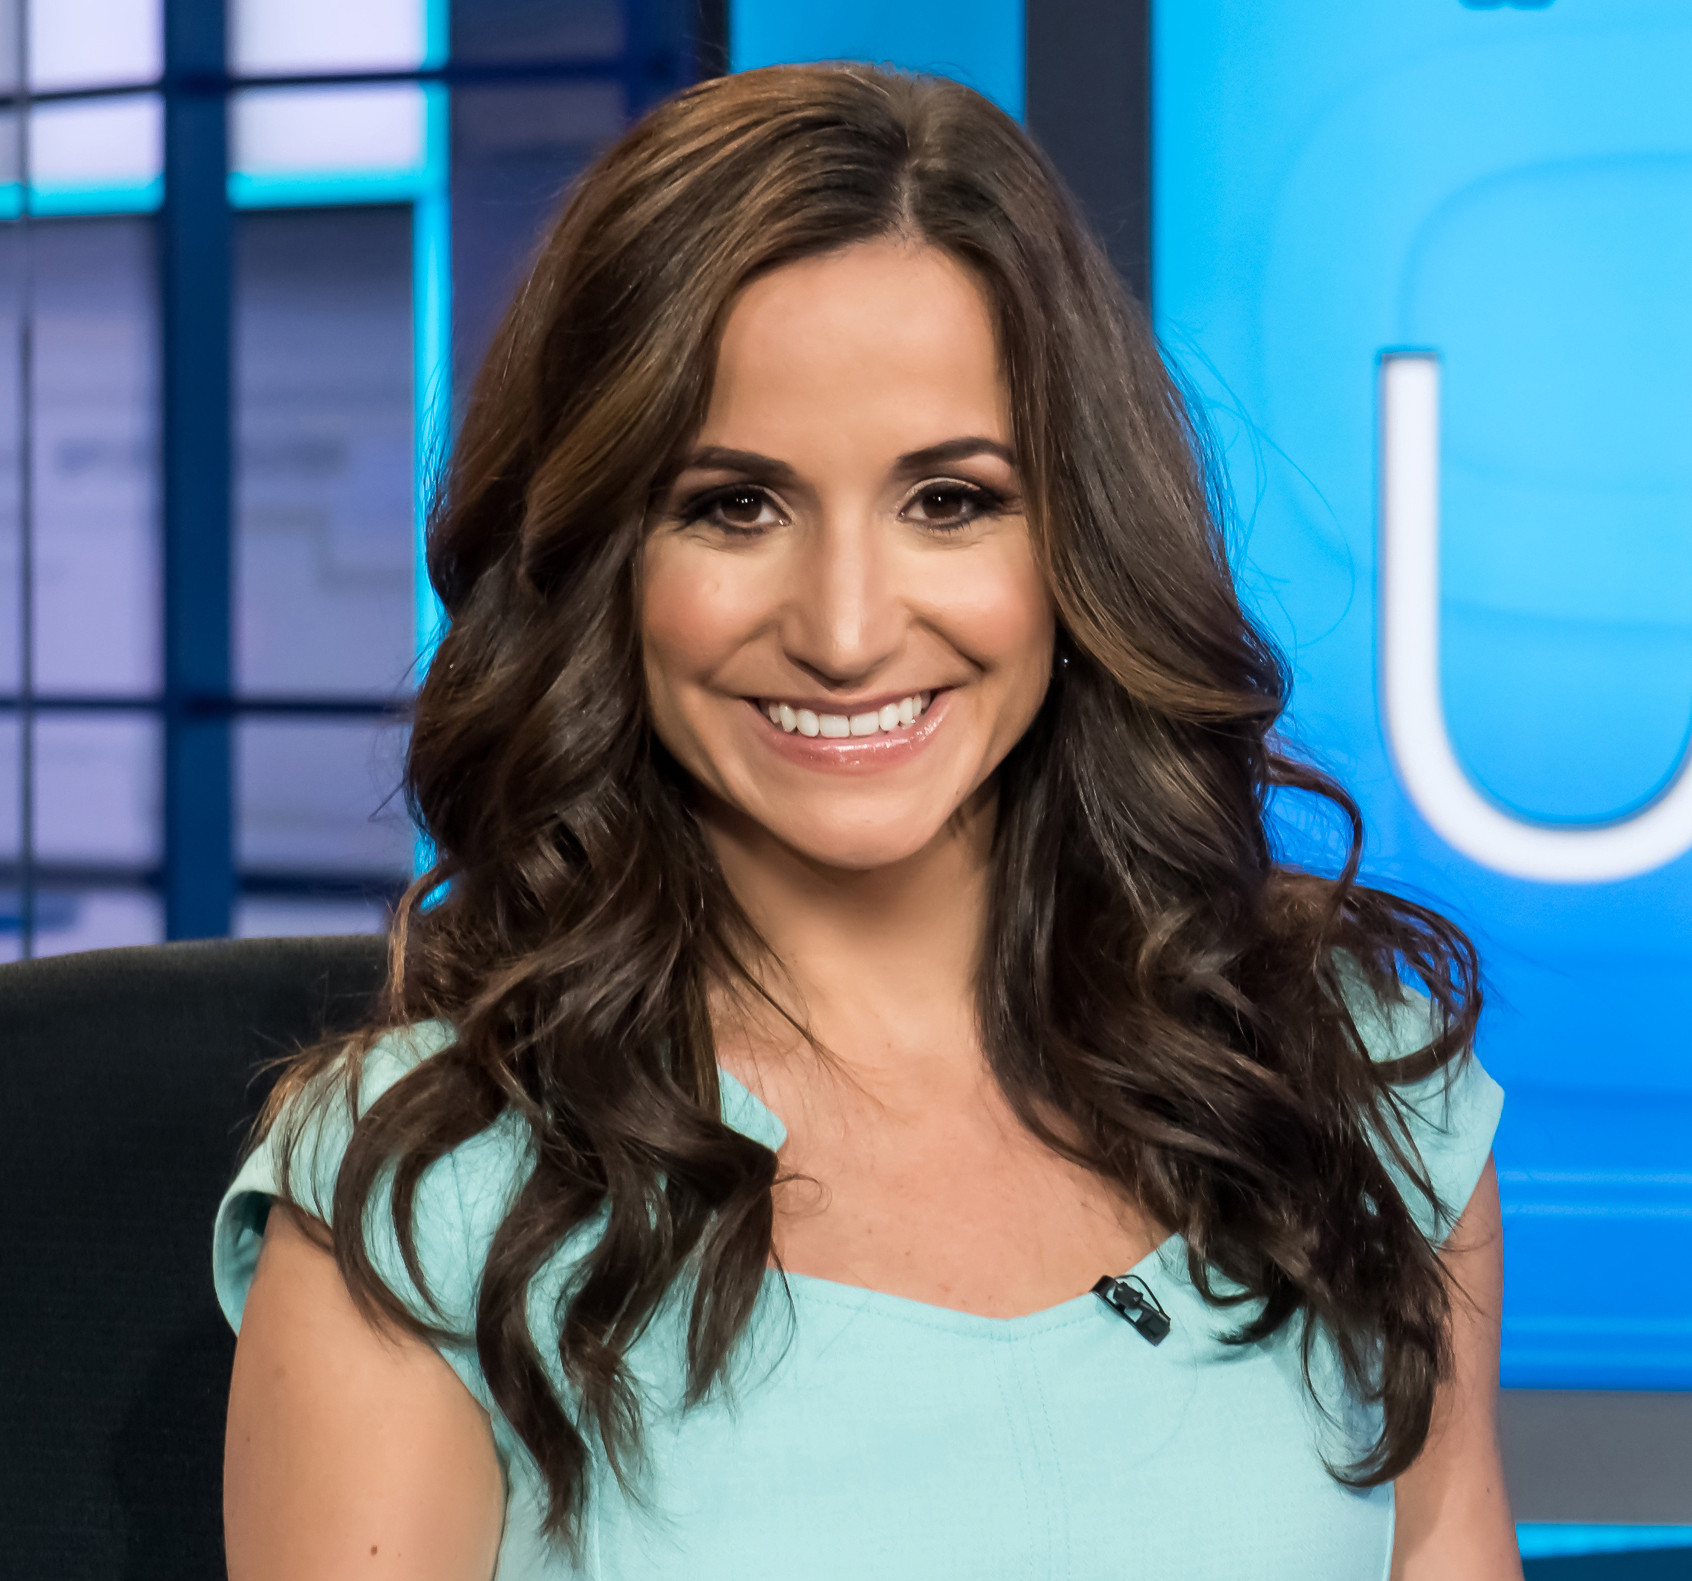 Dianna Russini - ESPN Press Room U S